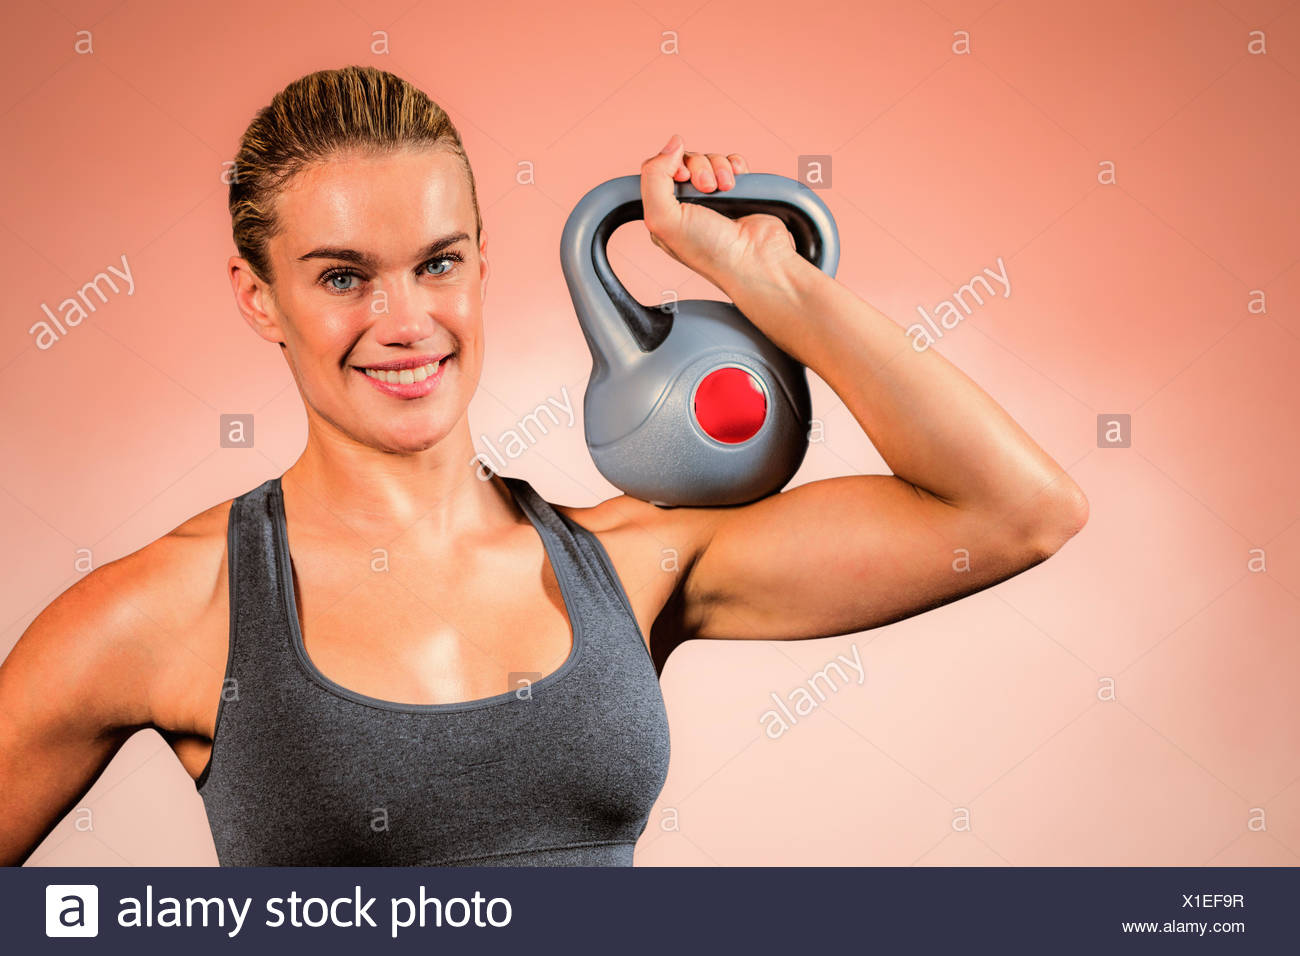 Composite image of muscular woman swinging heavy kettlebell - Stock Image